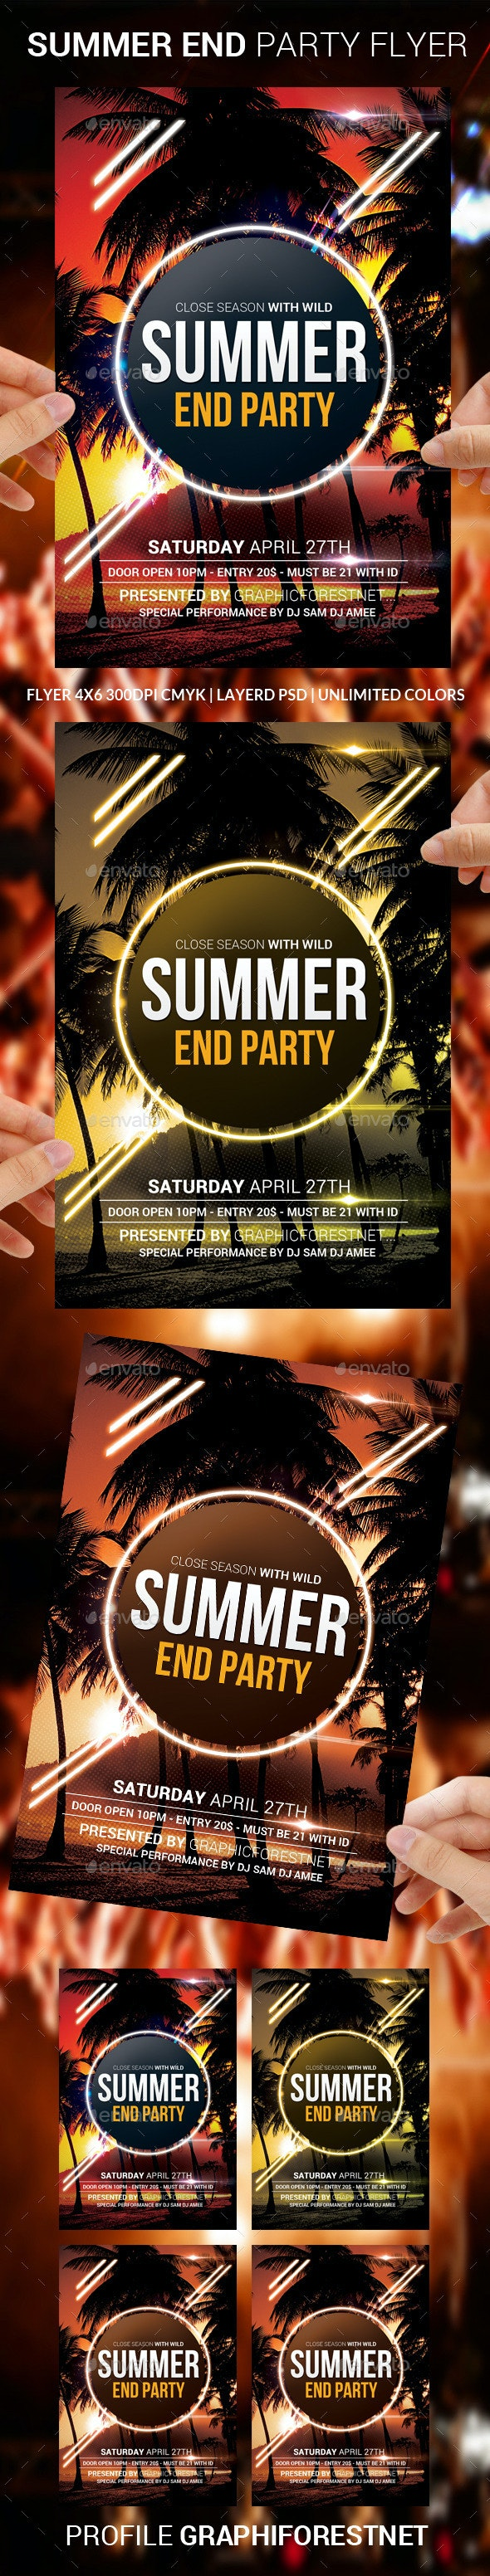 Summer End Party Flyer Template - Clubs & Parties Events